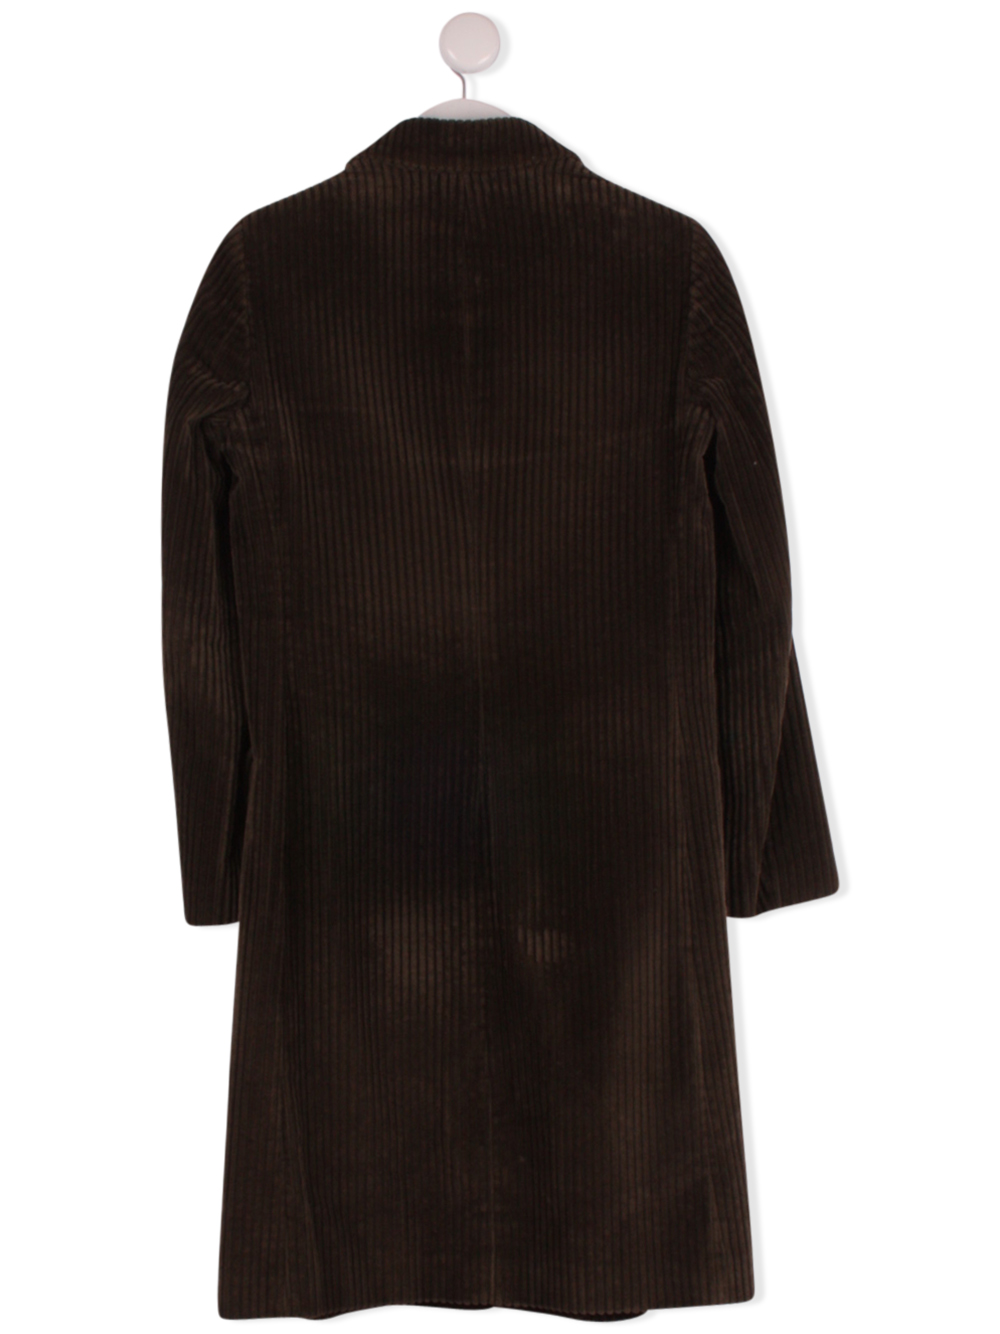 newest 57a96 c7876 Henry Cotton's Cappotto